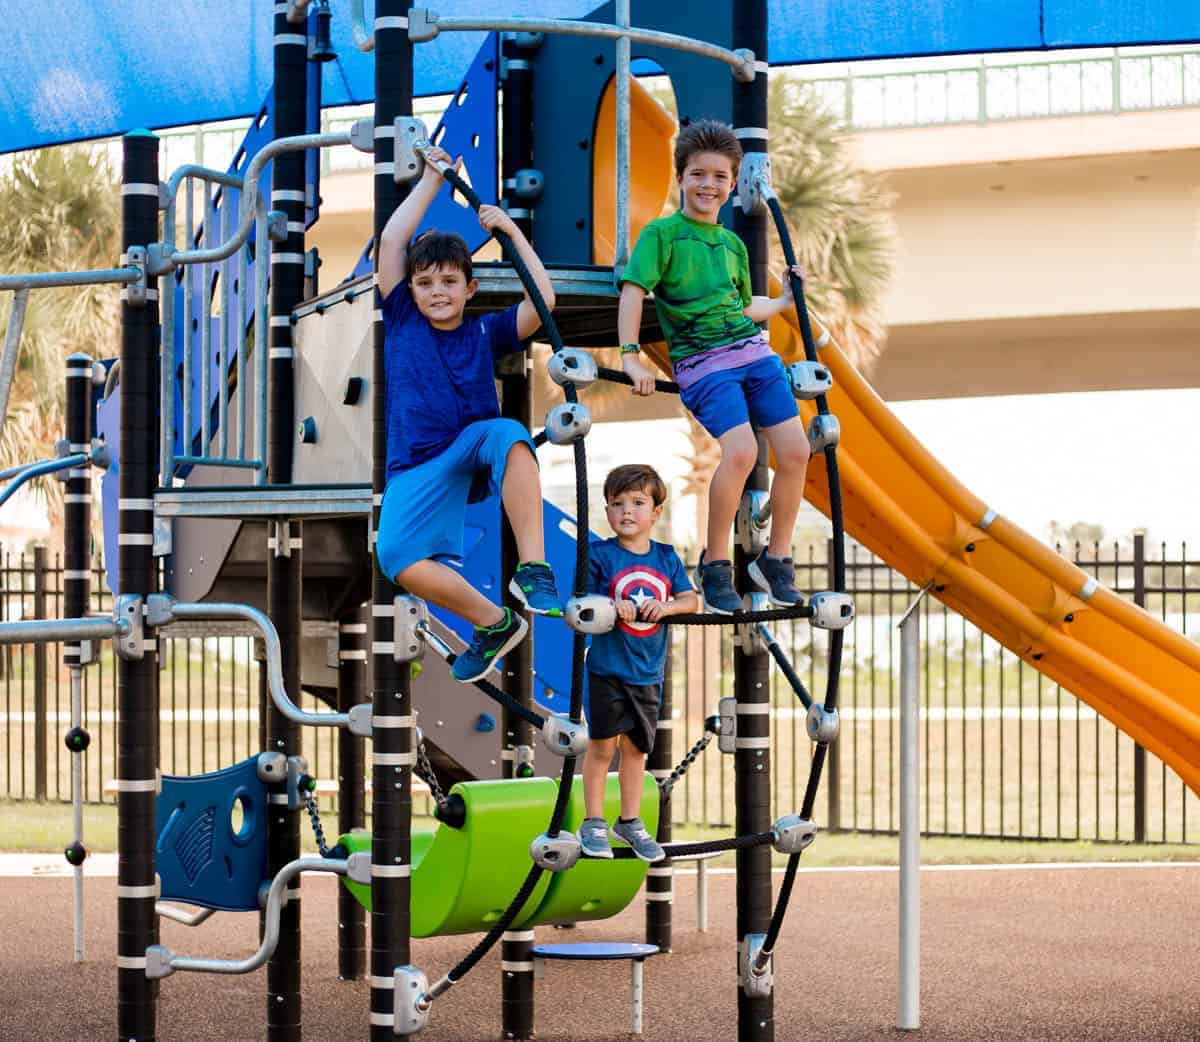 DAILY MOM PARENTS PORTAL WHY KIDS NEED RECESS